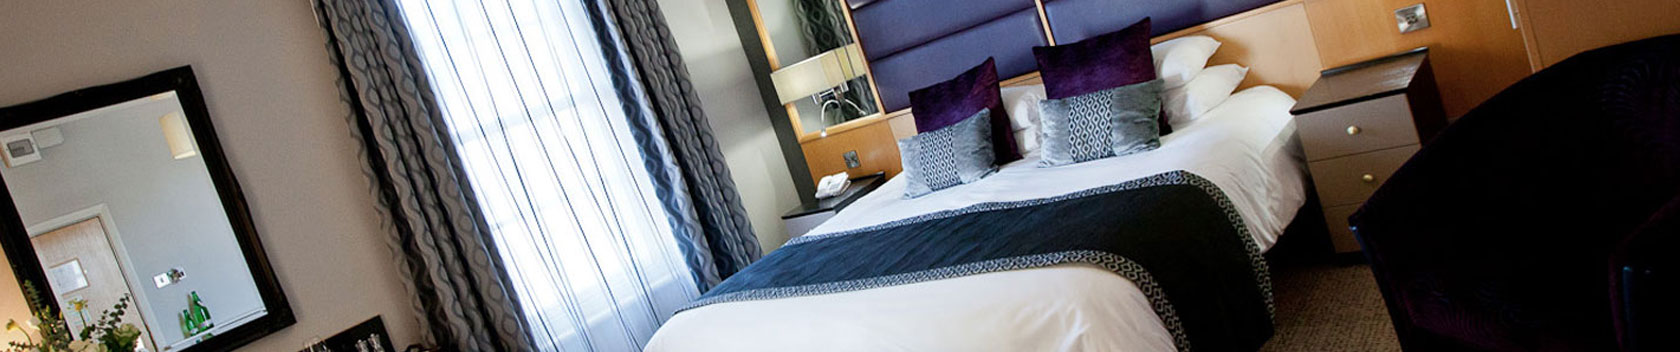 Rooms at The New Northumbria Hotel